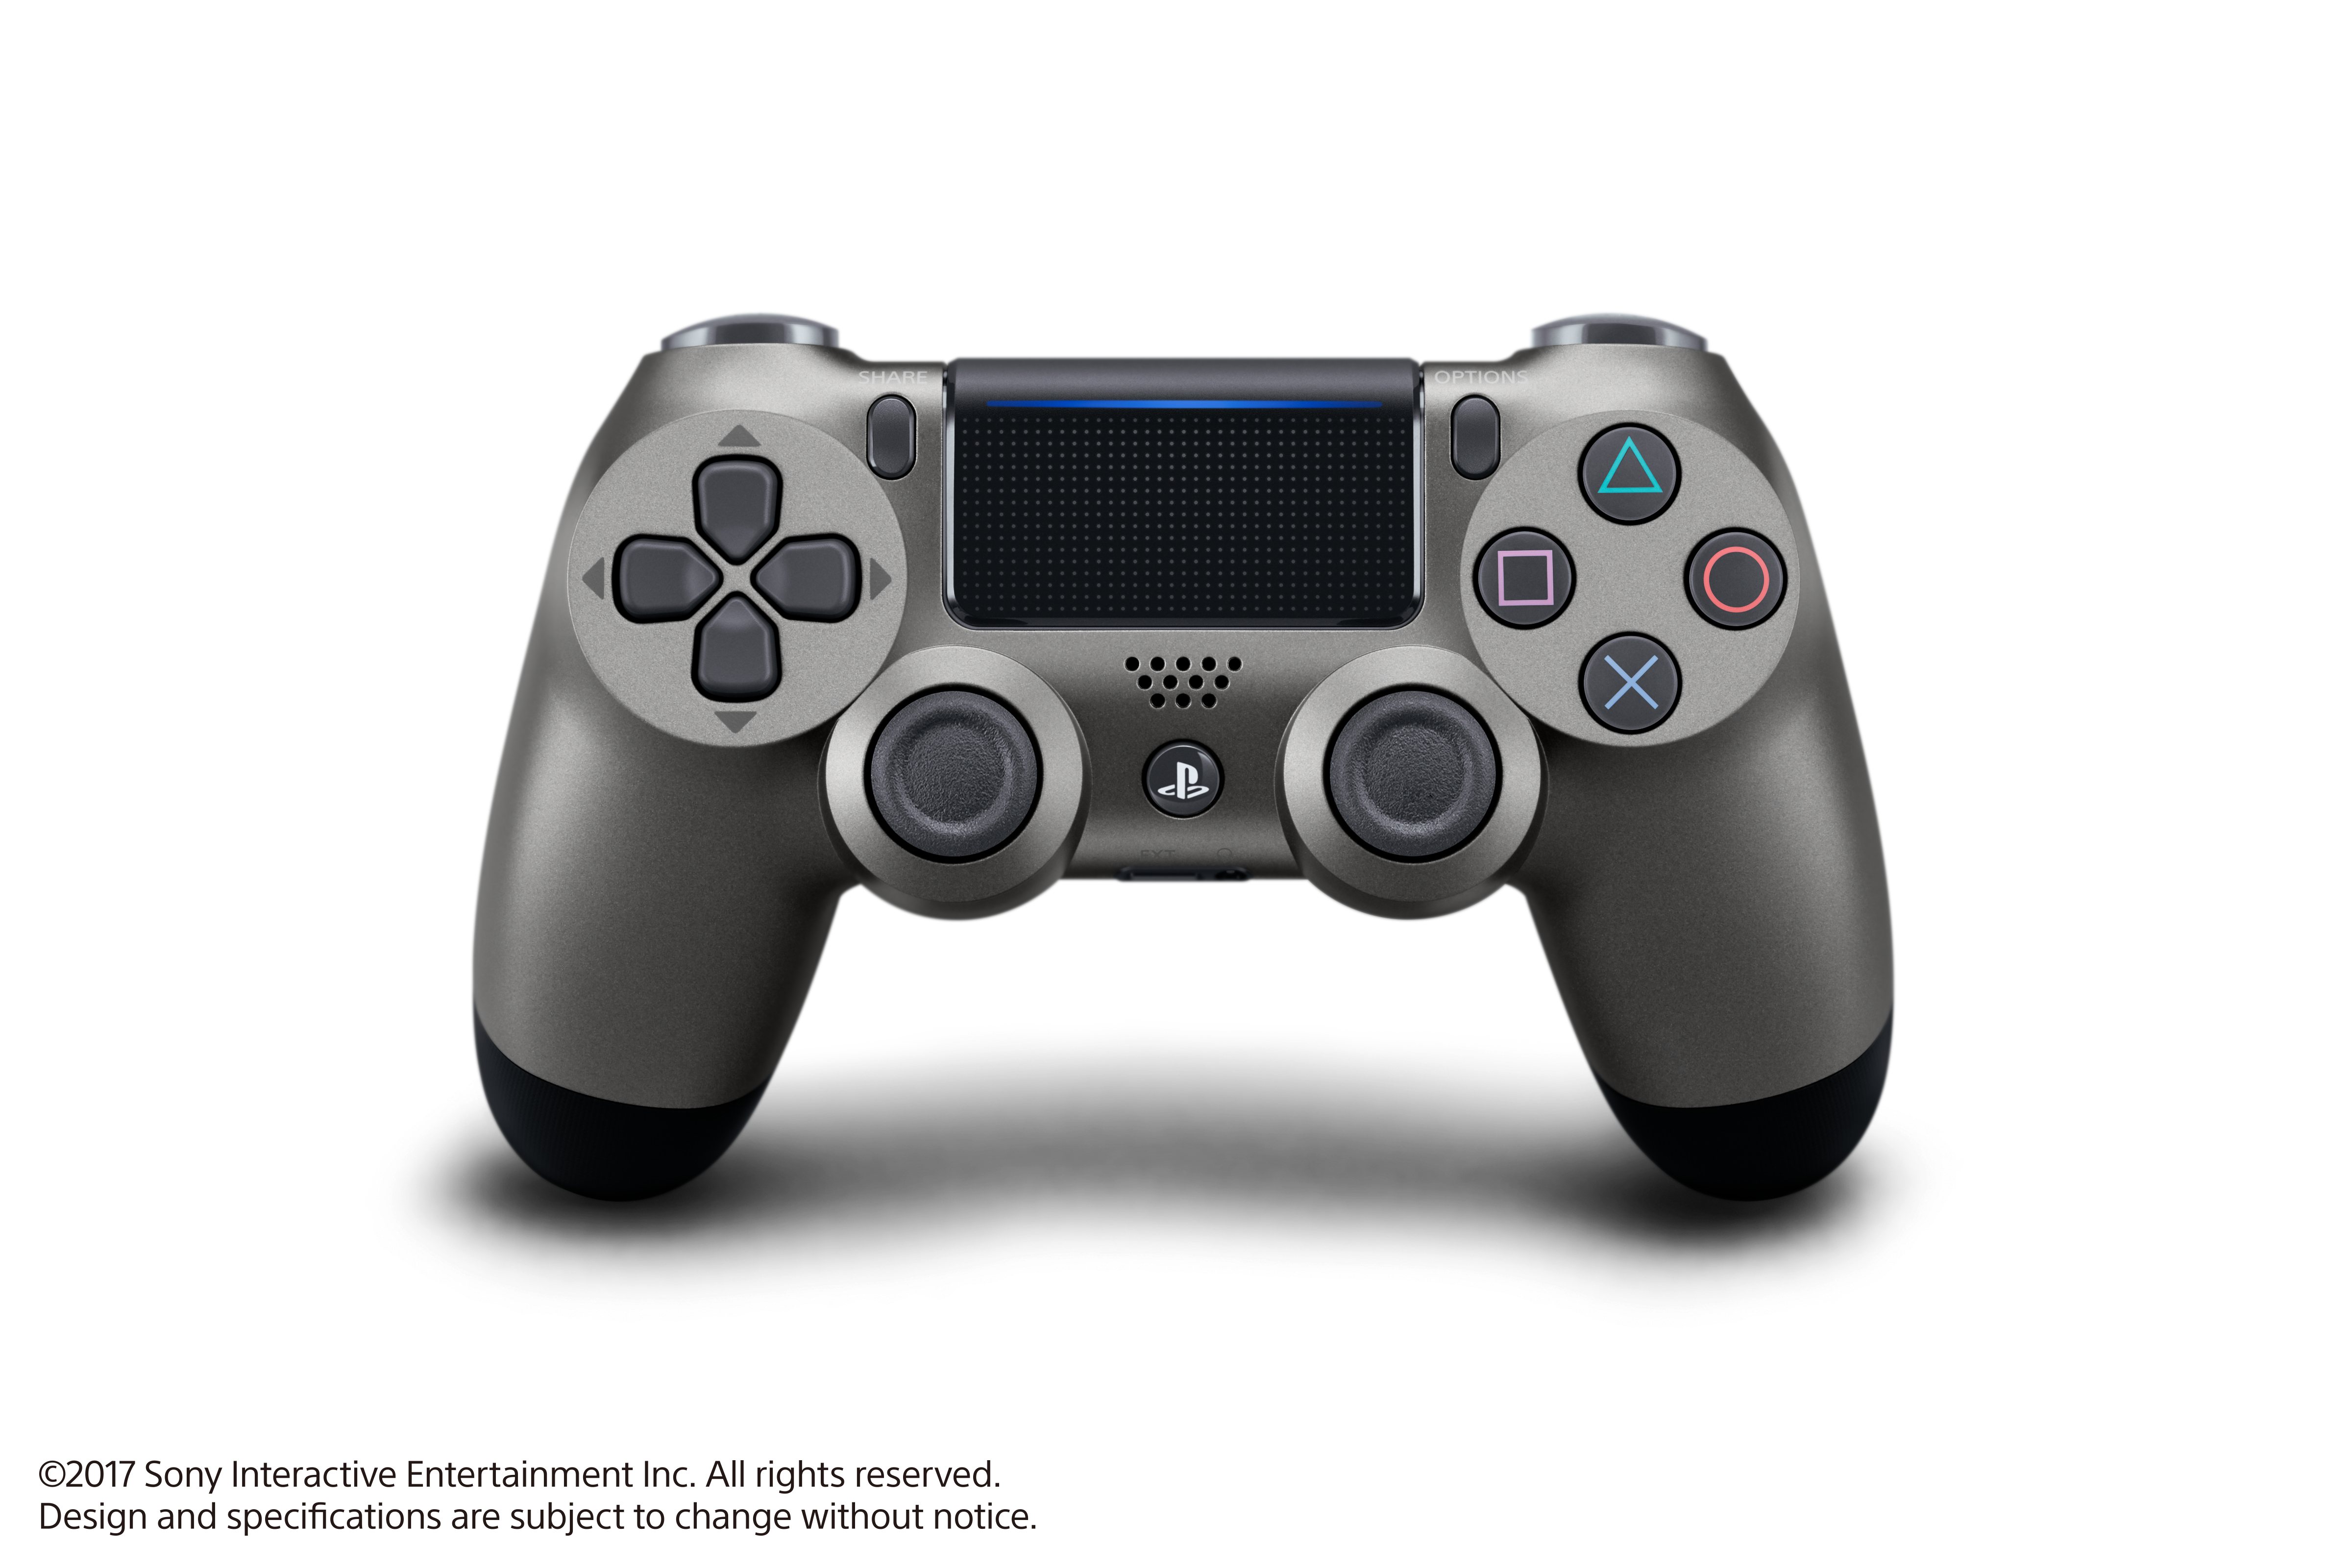 Sony Playstation 4 DualShock 4 Controller, Steel Black, 3002837 by Sony